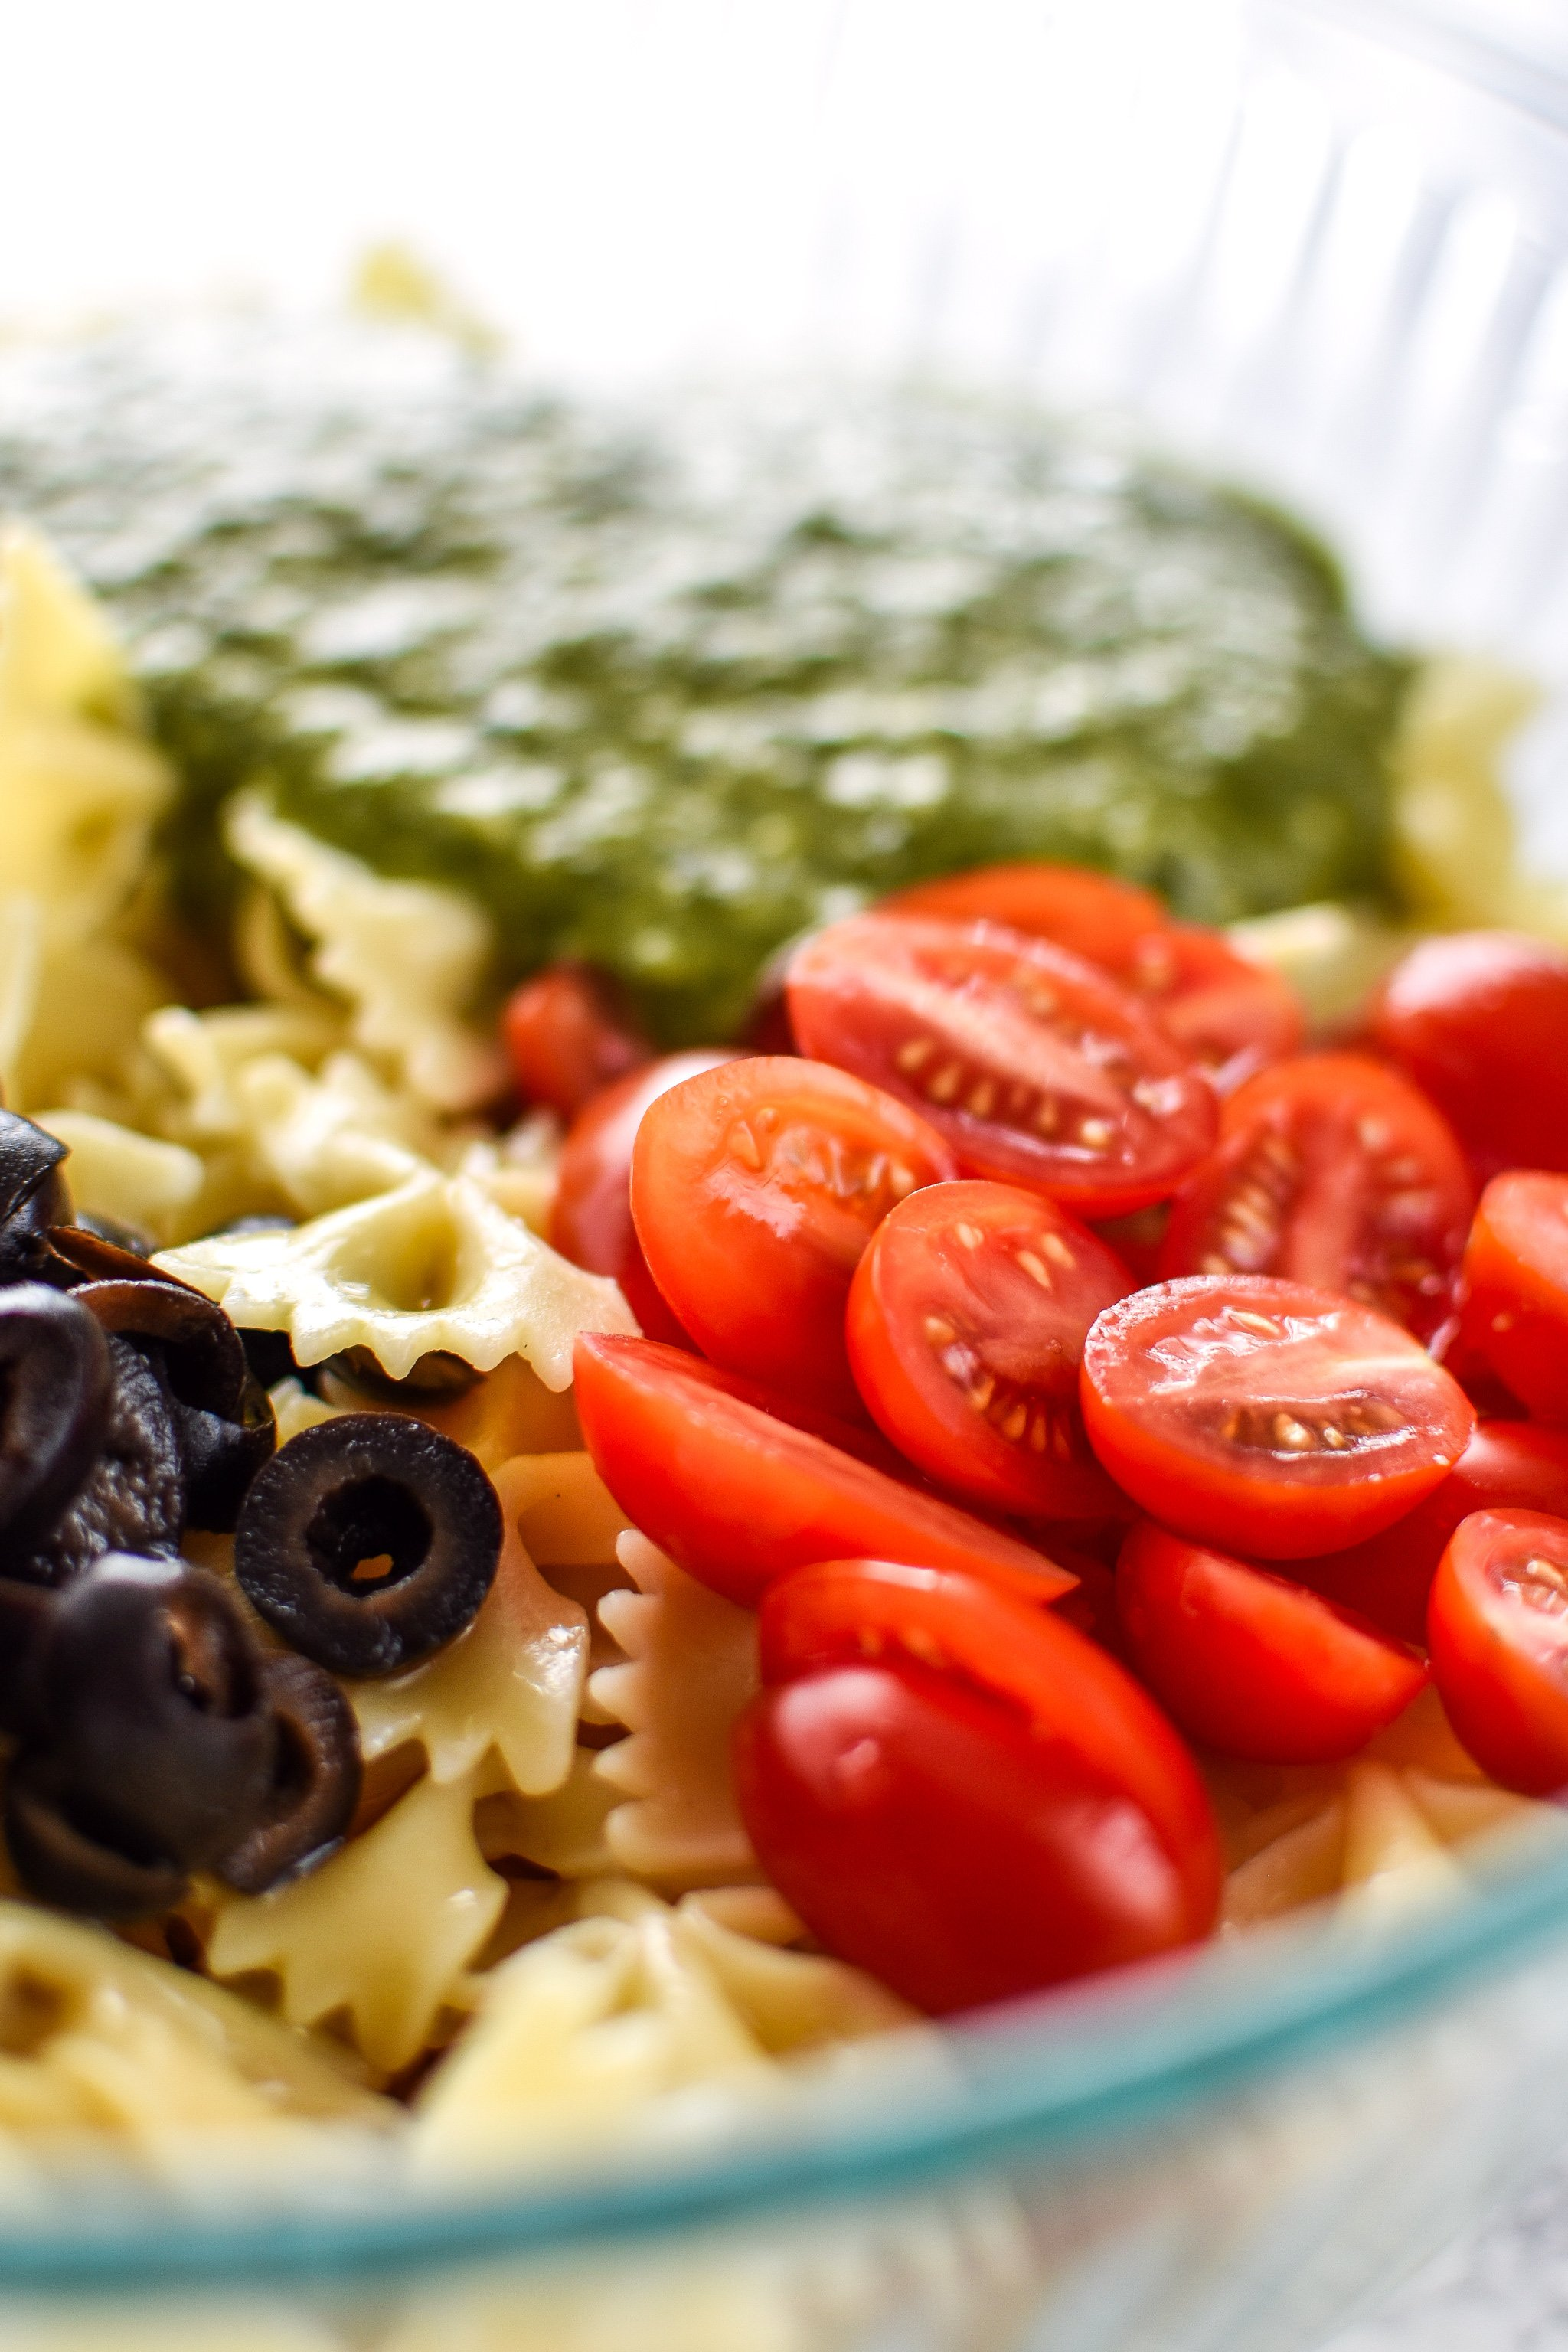 All the ingredients ready for Incredibly Easy Pesto Pasta Salad - just 6 simple ingredients for the best make-ahead side dish! - ProjectMealPlan.com